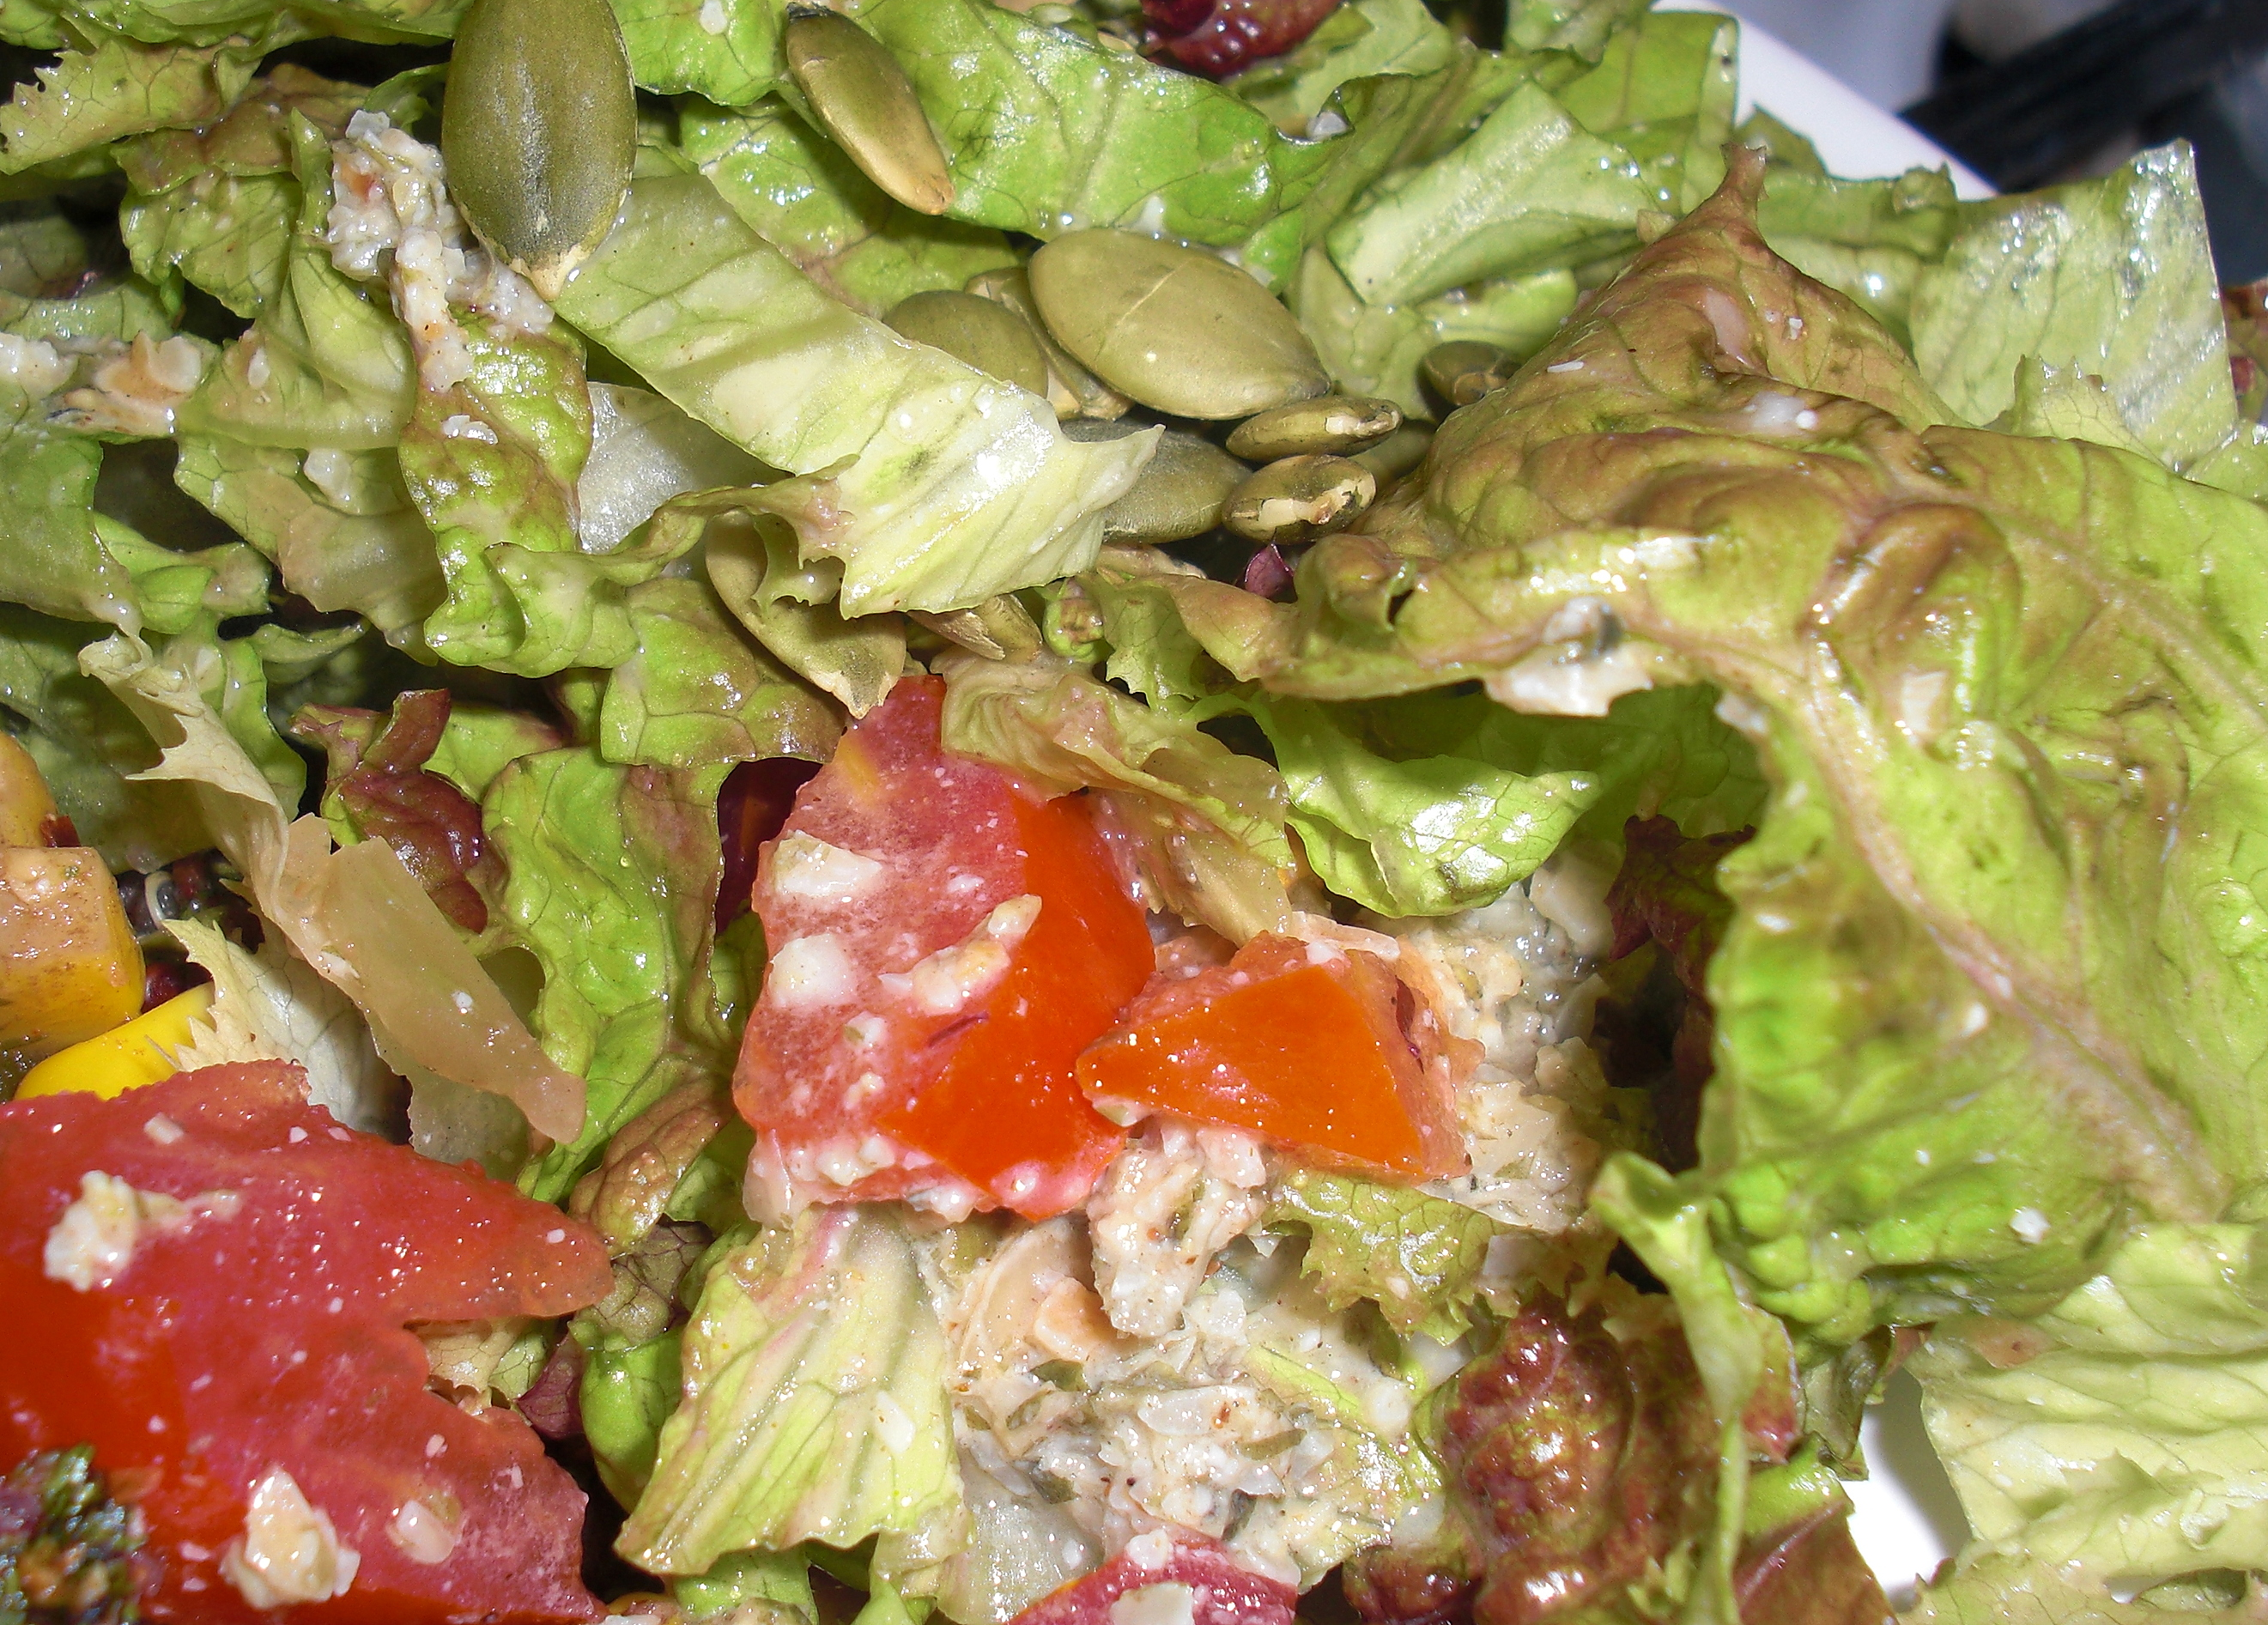 Salad with toasted pumpkin seed dressing